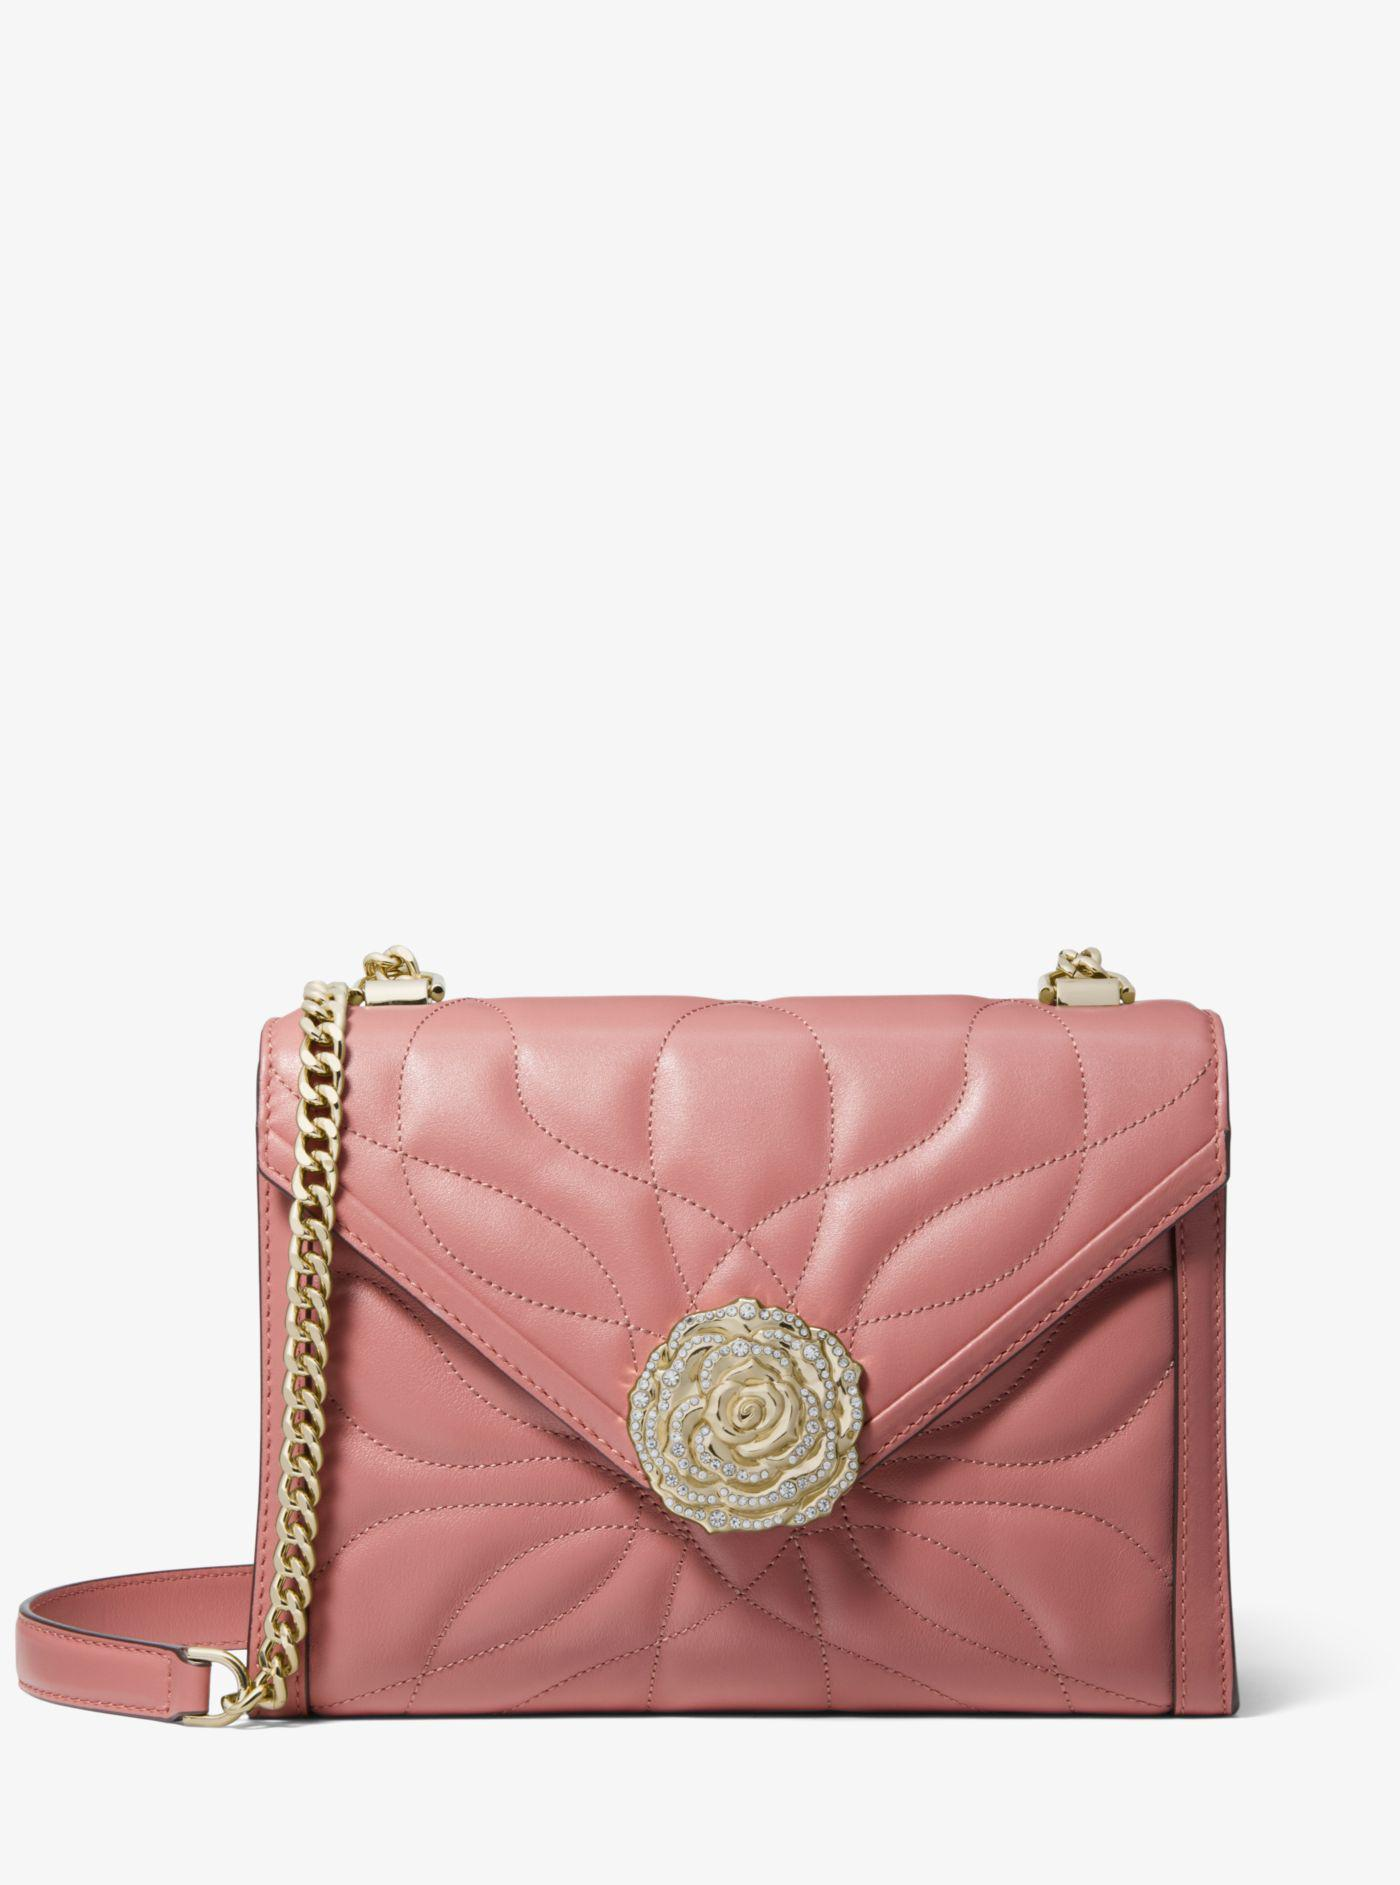 fb79757ec873 Michael Kors. Women s Pink Whitney Large Petal Quilted Leather Convertible Shoulder  Bag